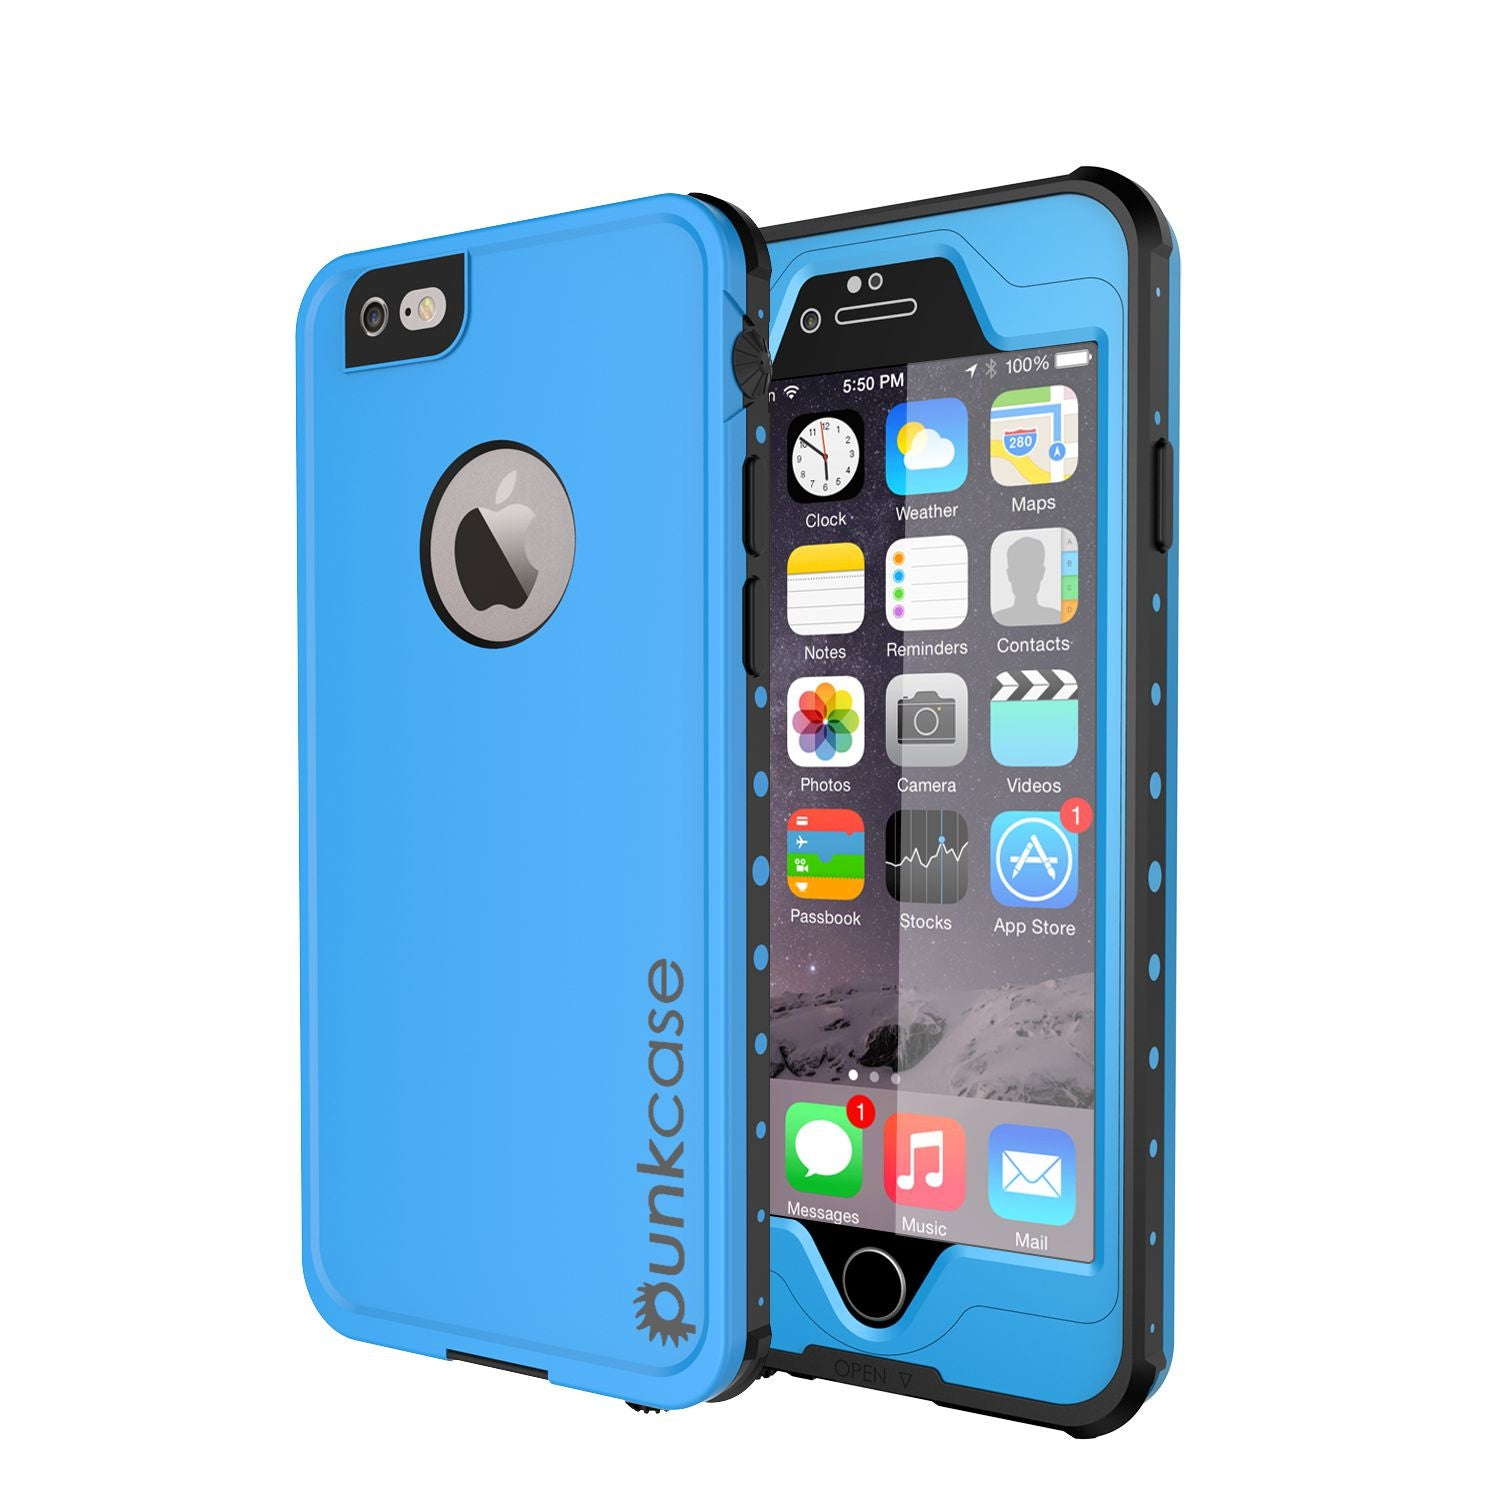 iPhone 6S+/6+ Plus Waterproof Case, PUNKcase StudStar Light Blue w/ Attached Screen Protector